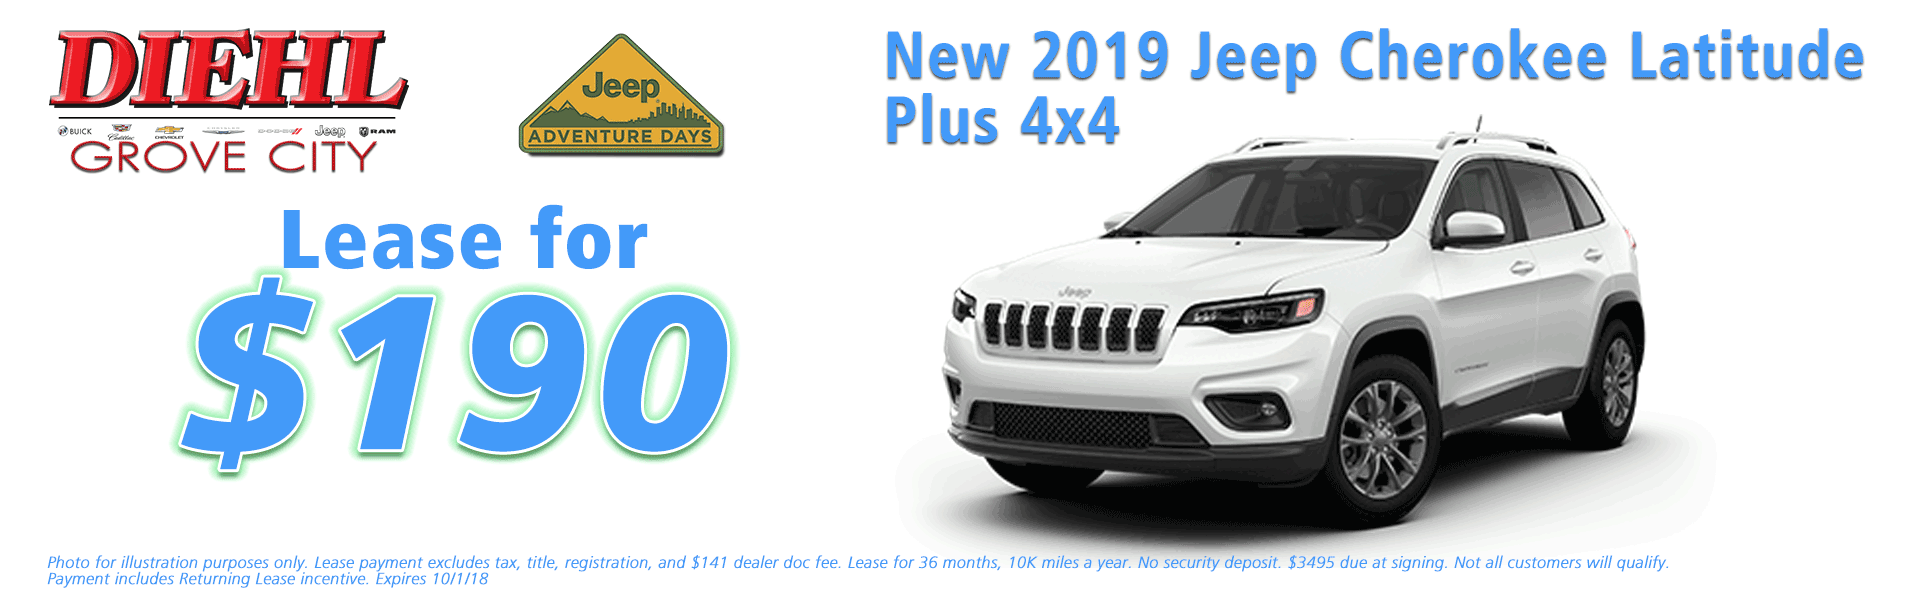 Diehl of Grove City Chrysler Jeep Dodge Ram Chevrolet Buick Cadillac Grove City, PA sales service parts collision repair NEW 2019 JEEP CHEROKEE LATITUDE PLUS 4X4